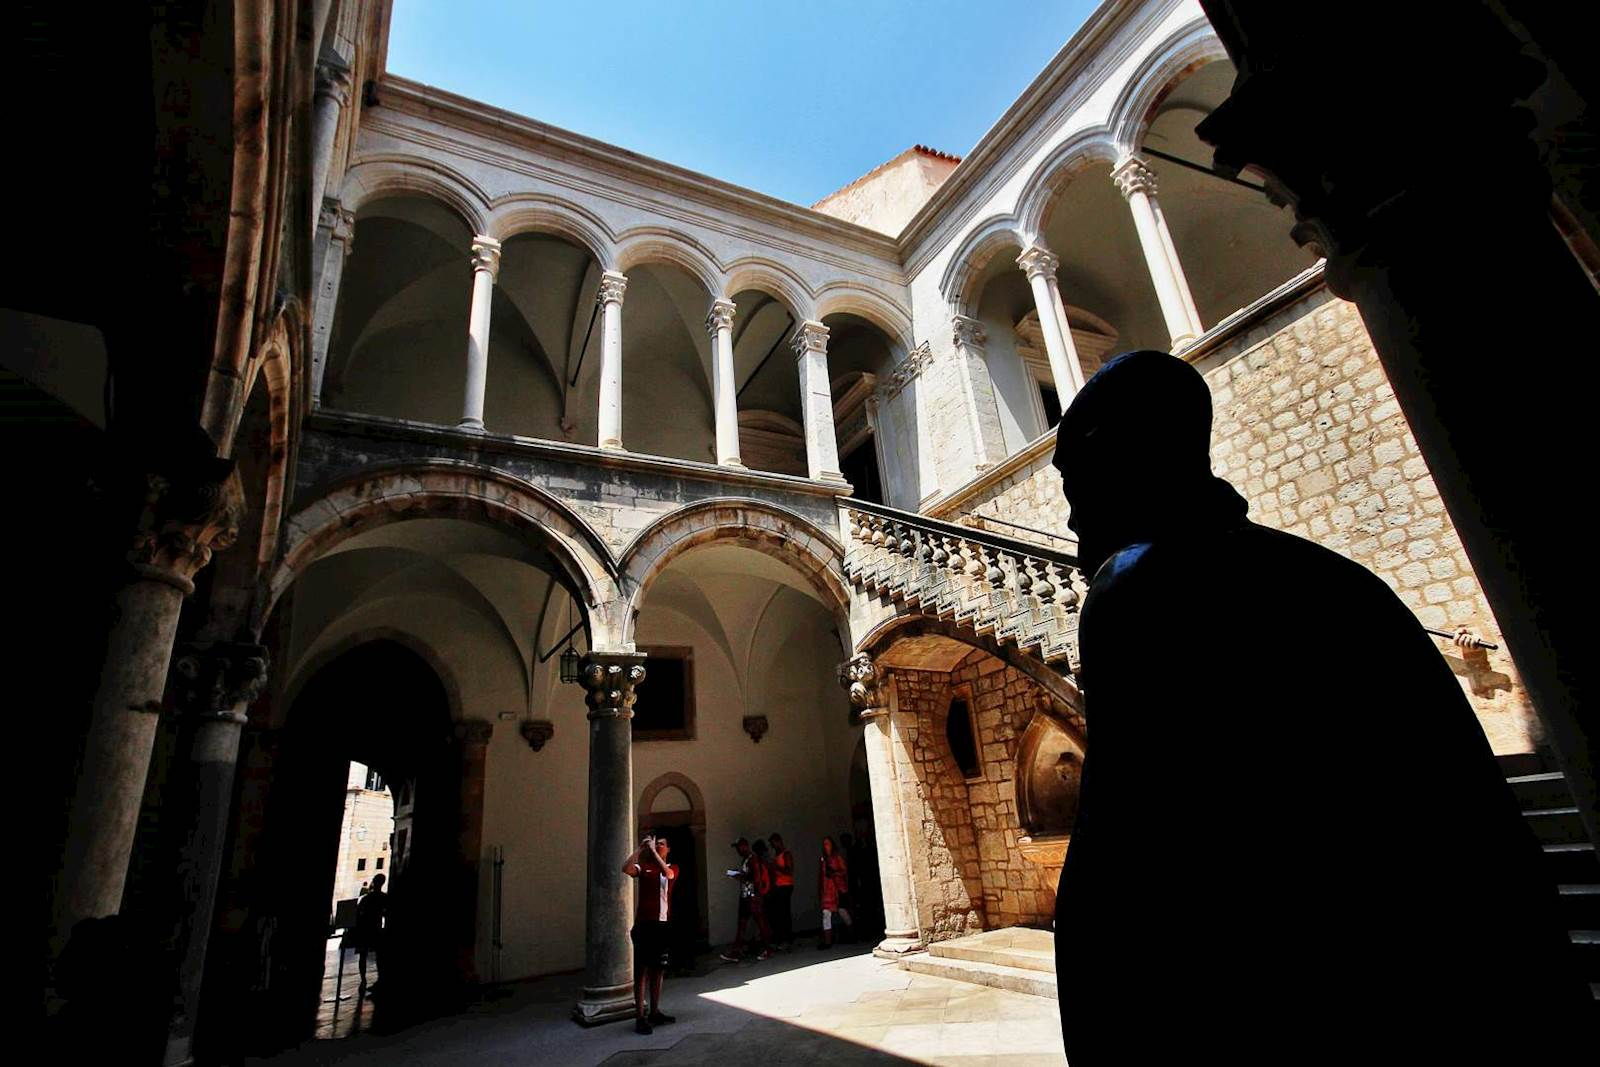 -images-excursions-discover-dubrovnik--26-dubrovnik-old-town-rectors-pallace.jpg